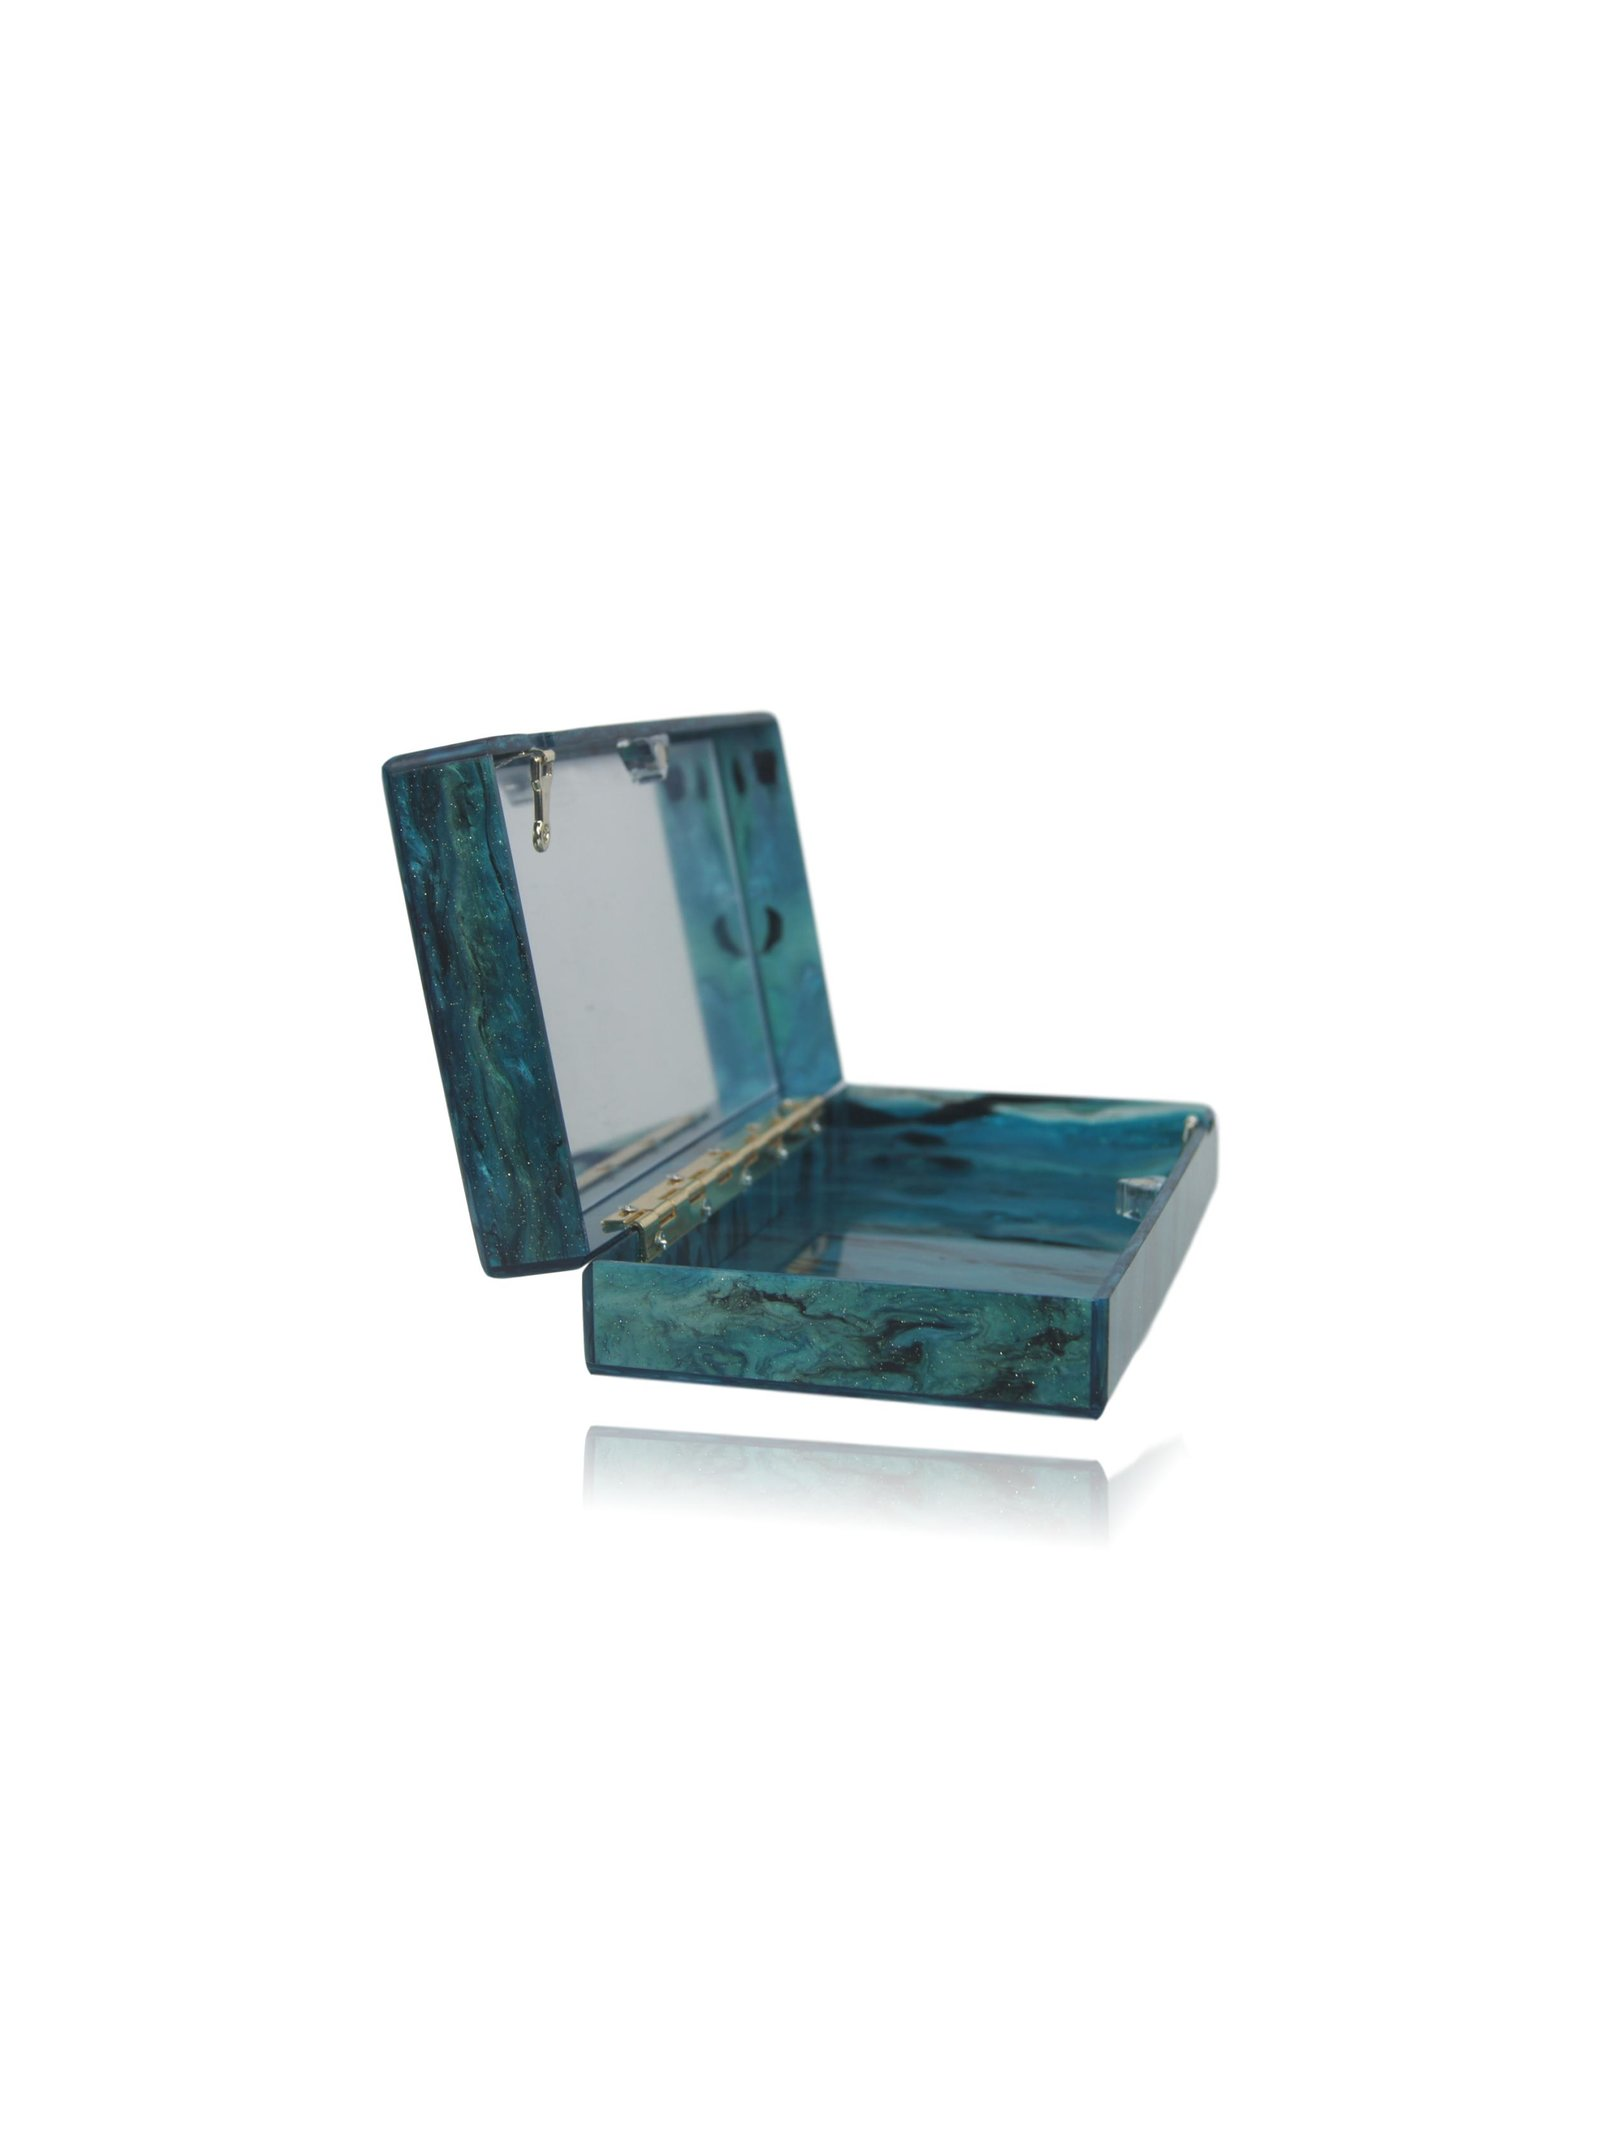 Milanblocks Sea Green Glitter Acrylic Box Clutch with Mirror